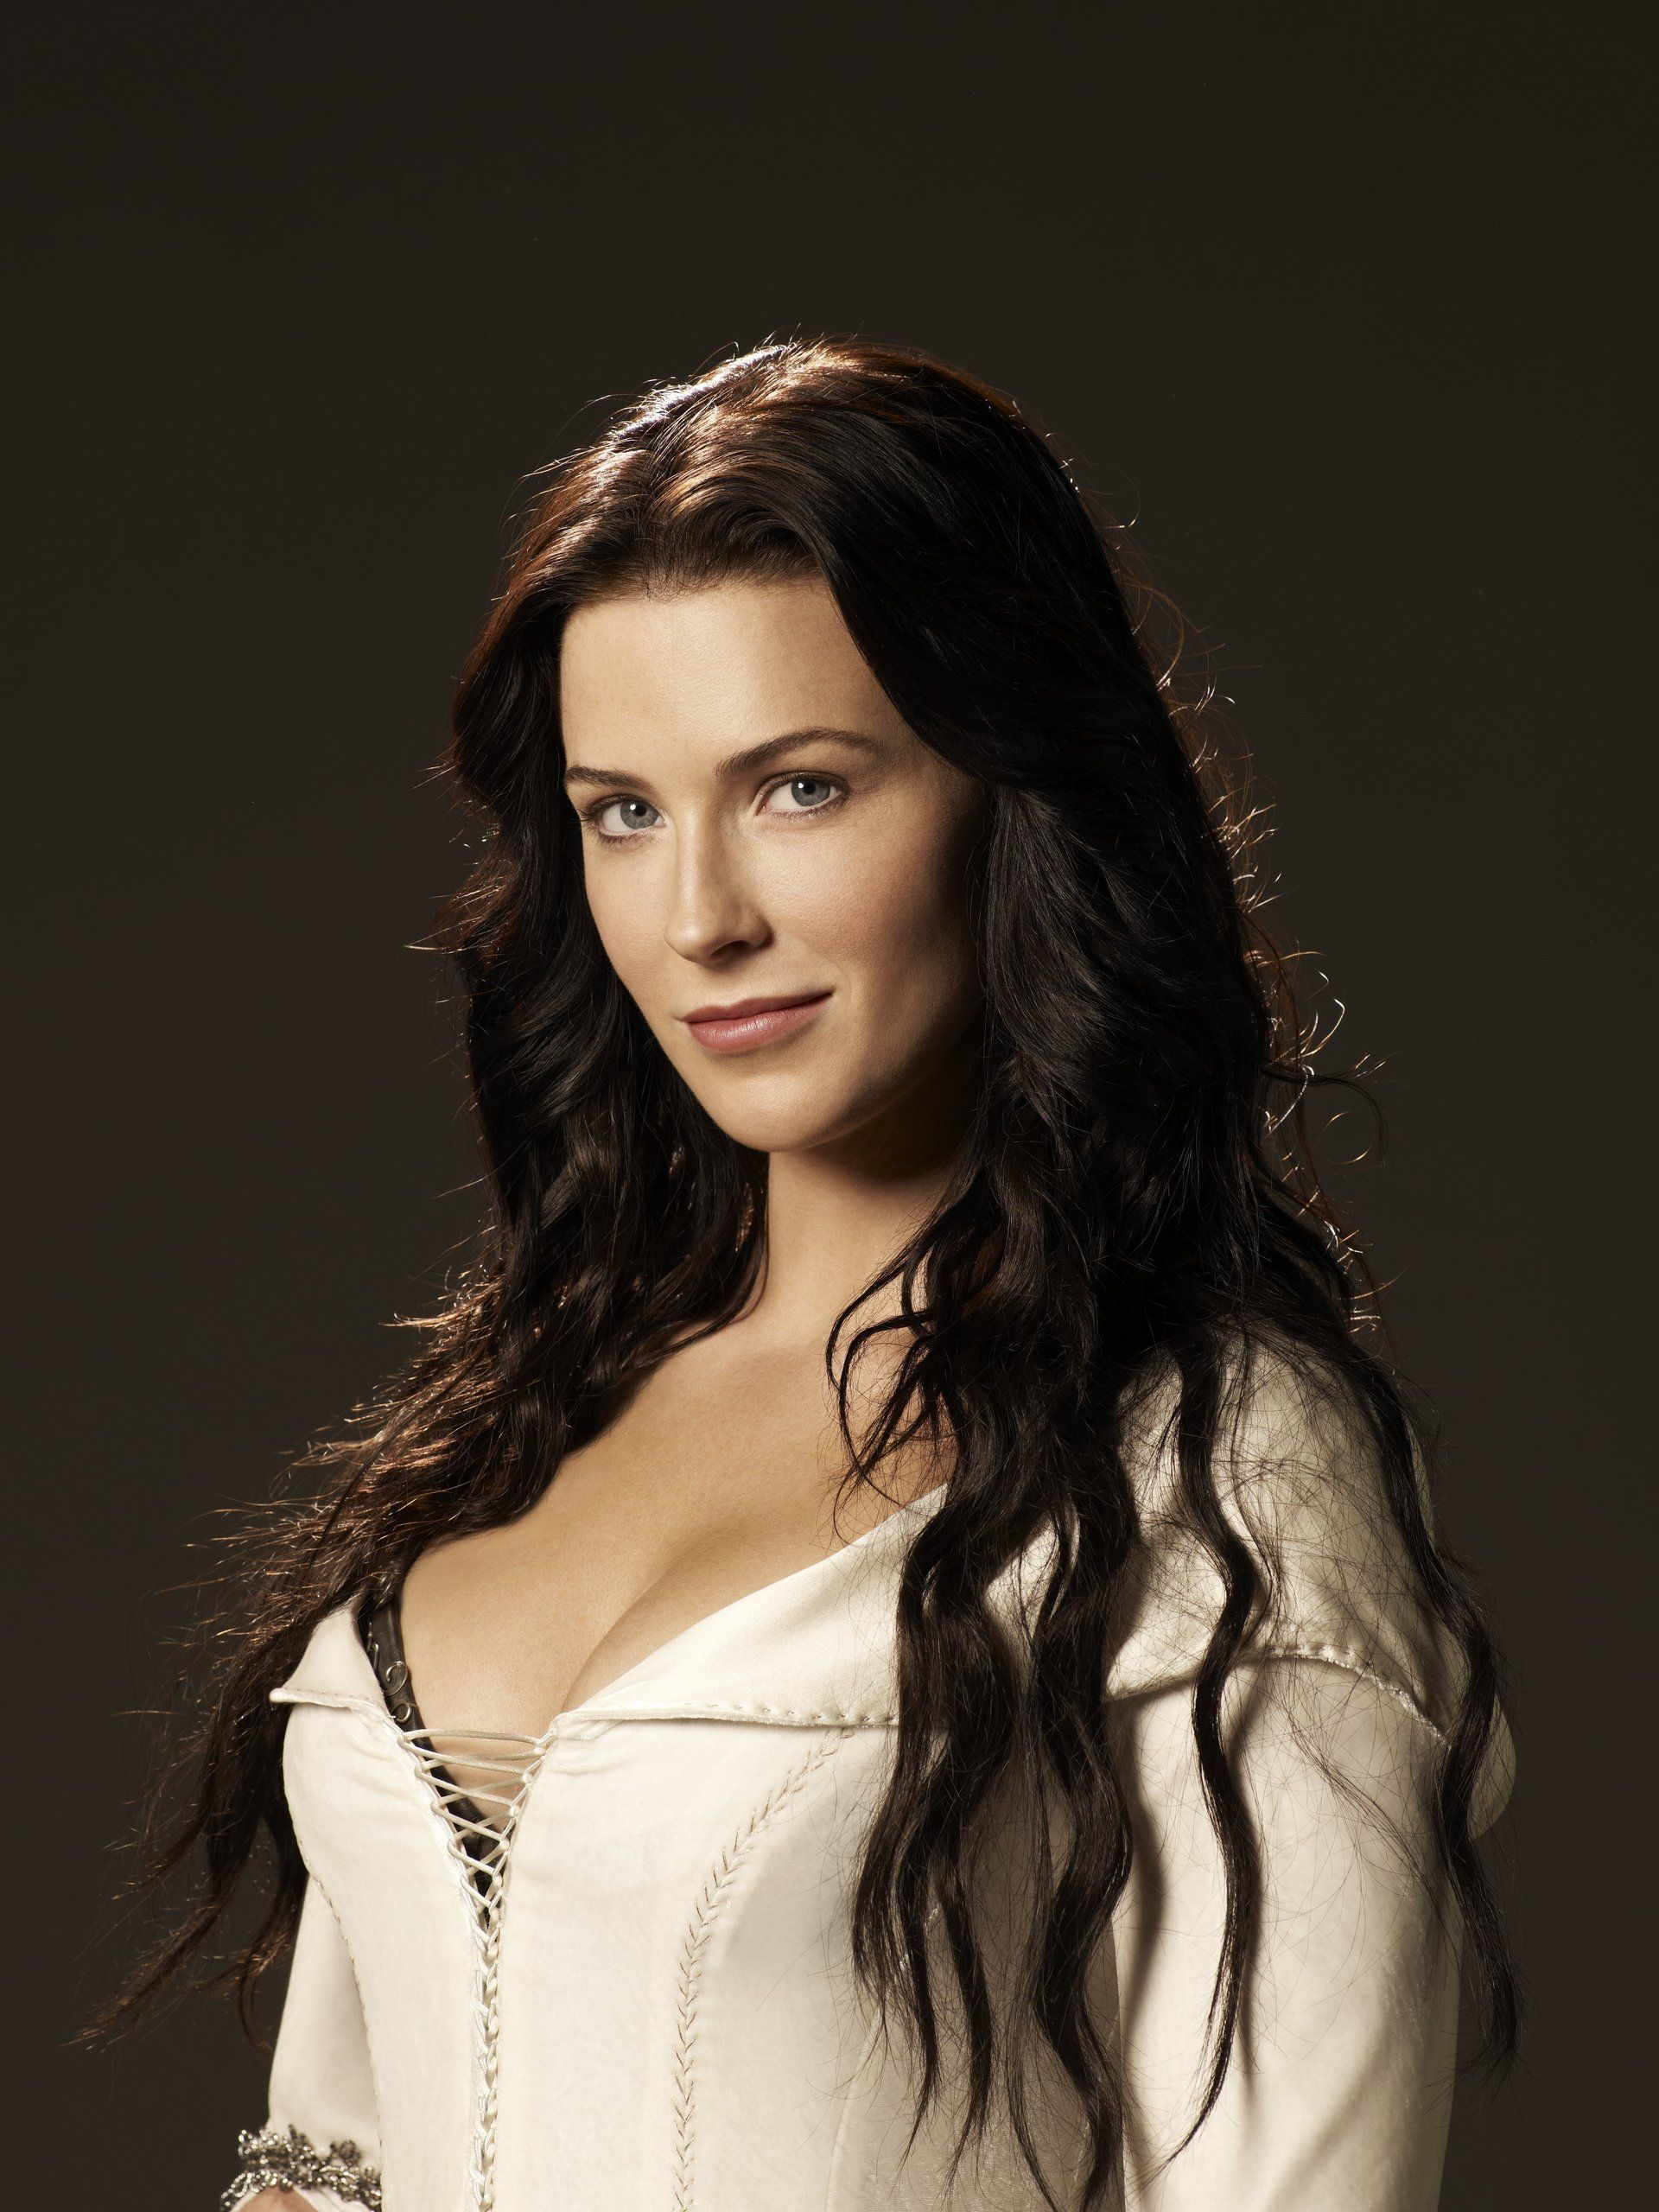 bridget regan fansite